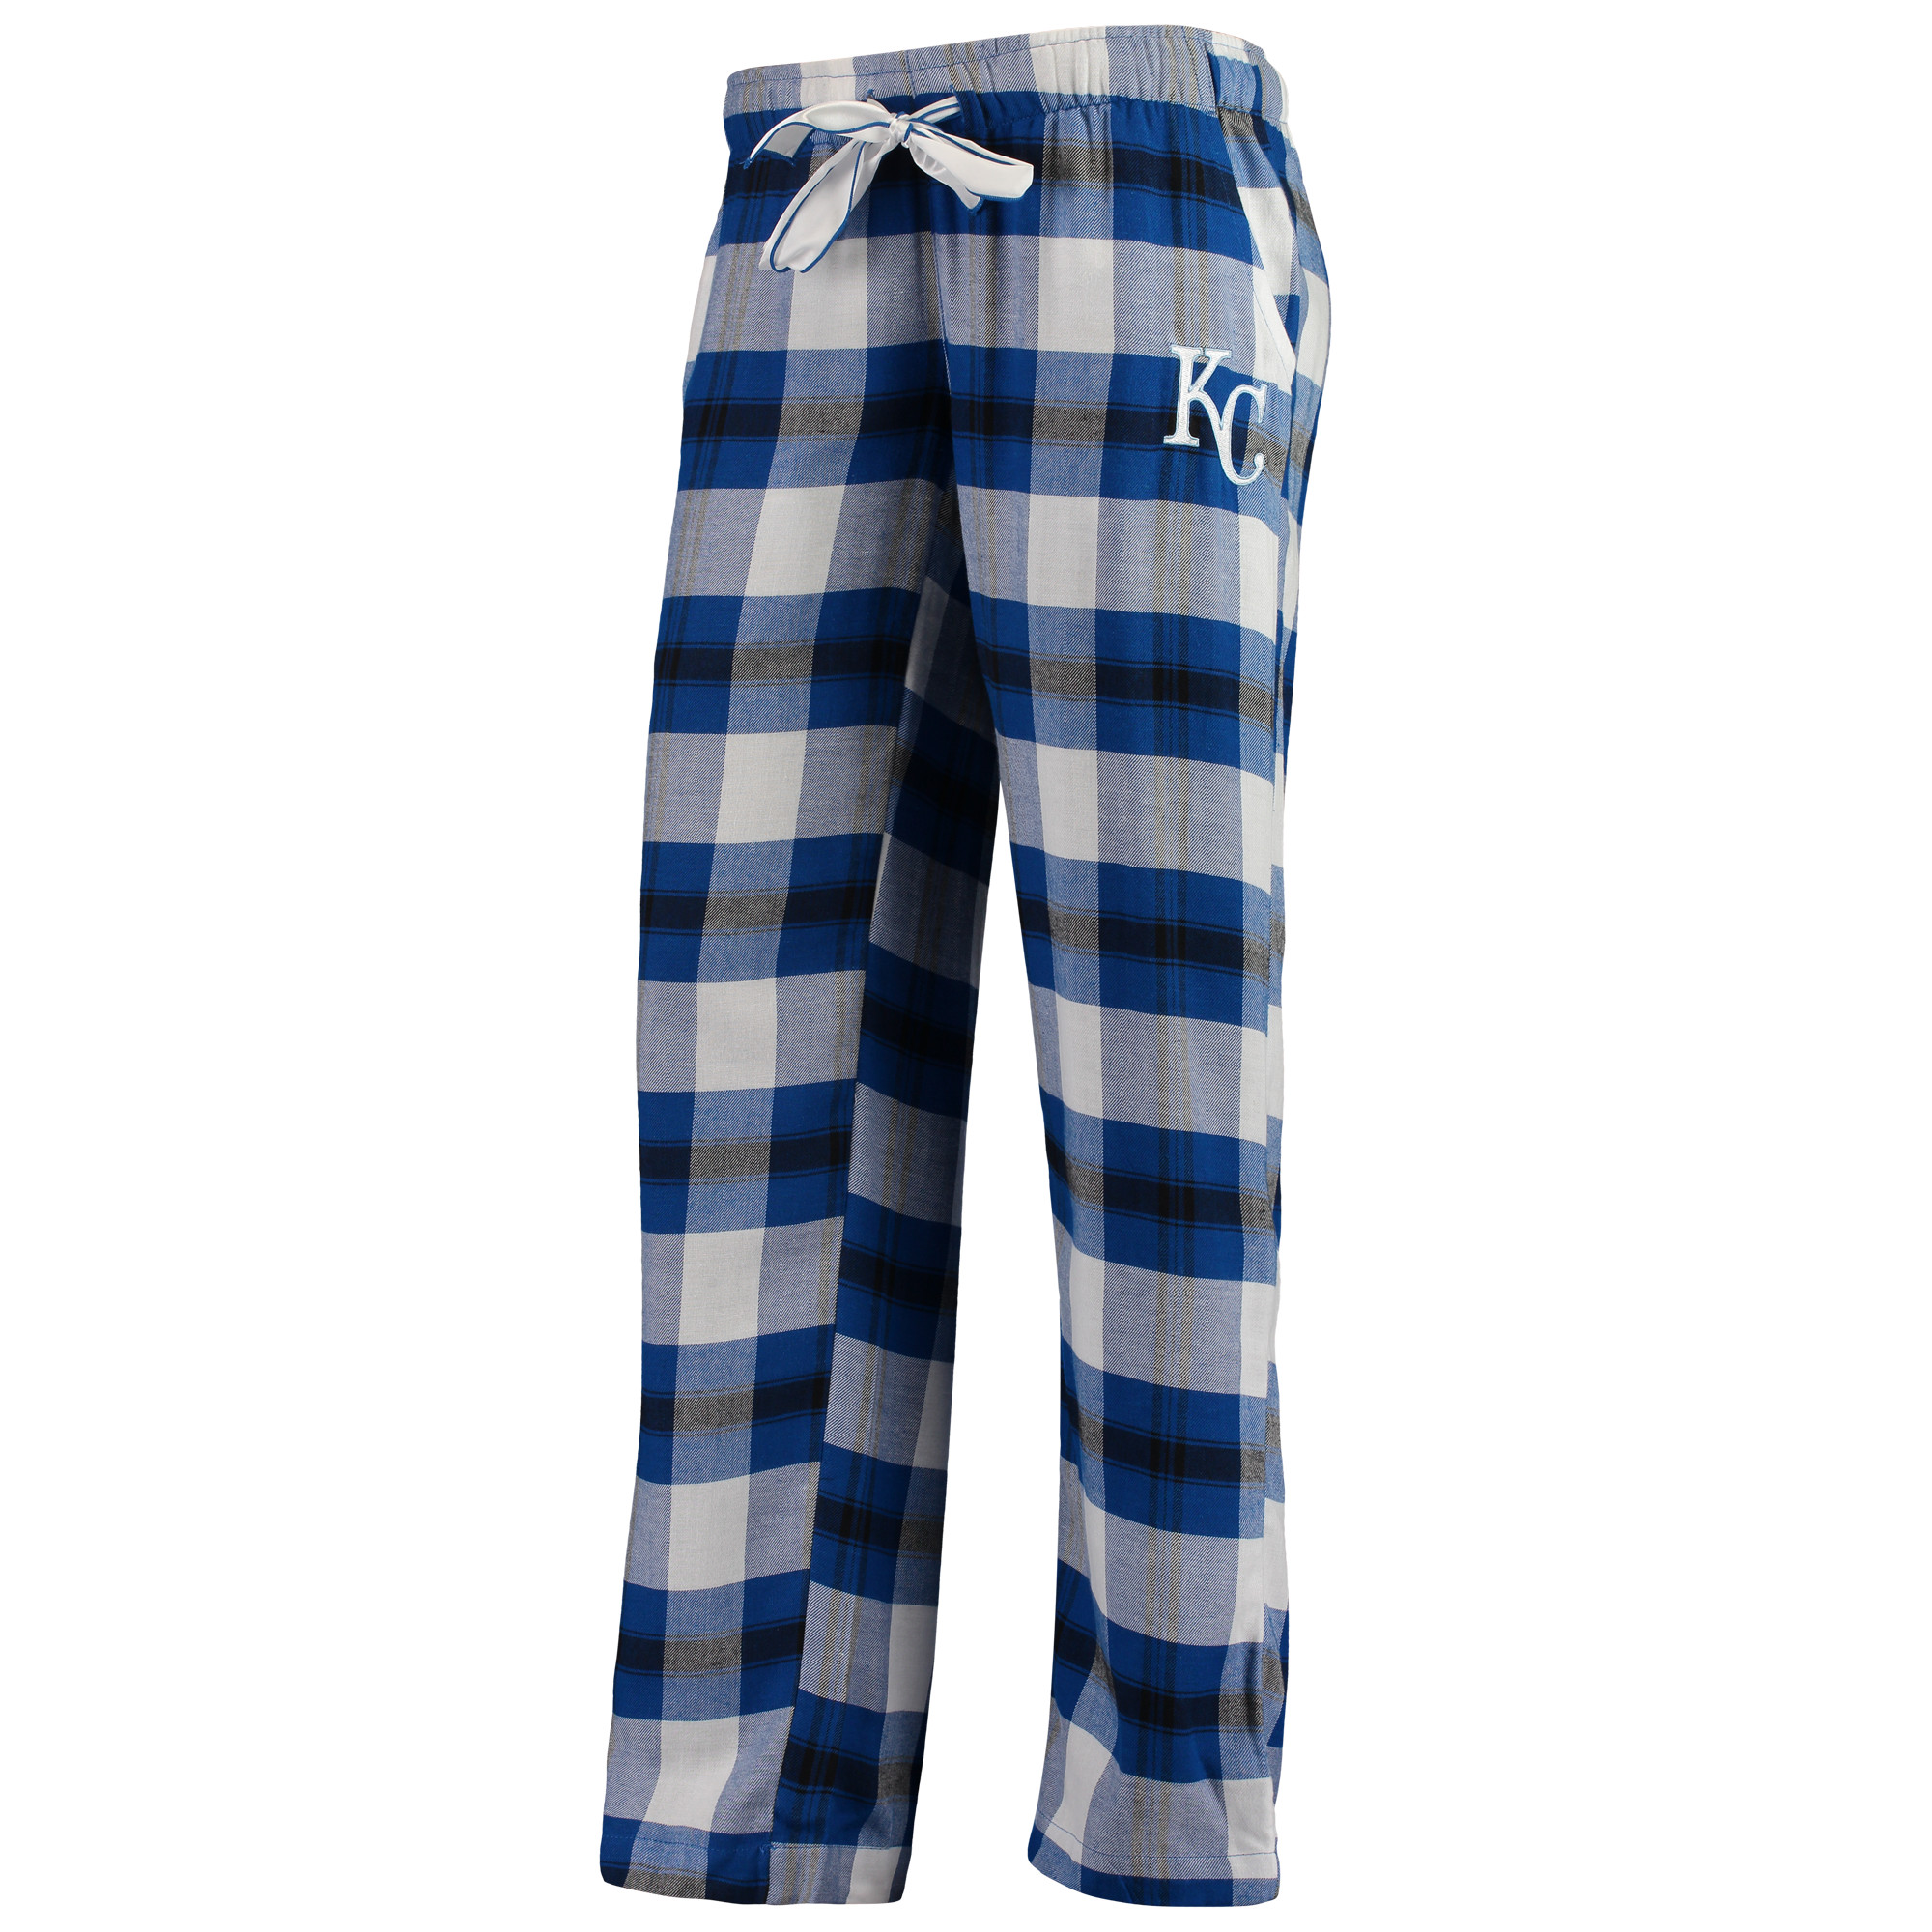 Kansas City Royals Concepts Sport Women's Headway Flannel Pants - Royal/Black